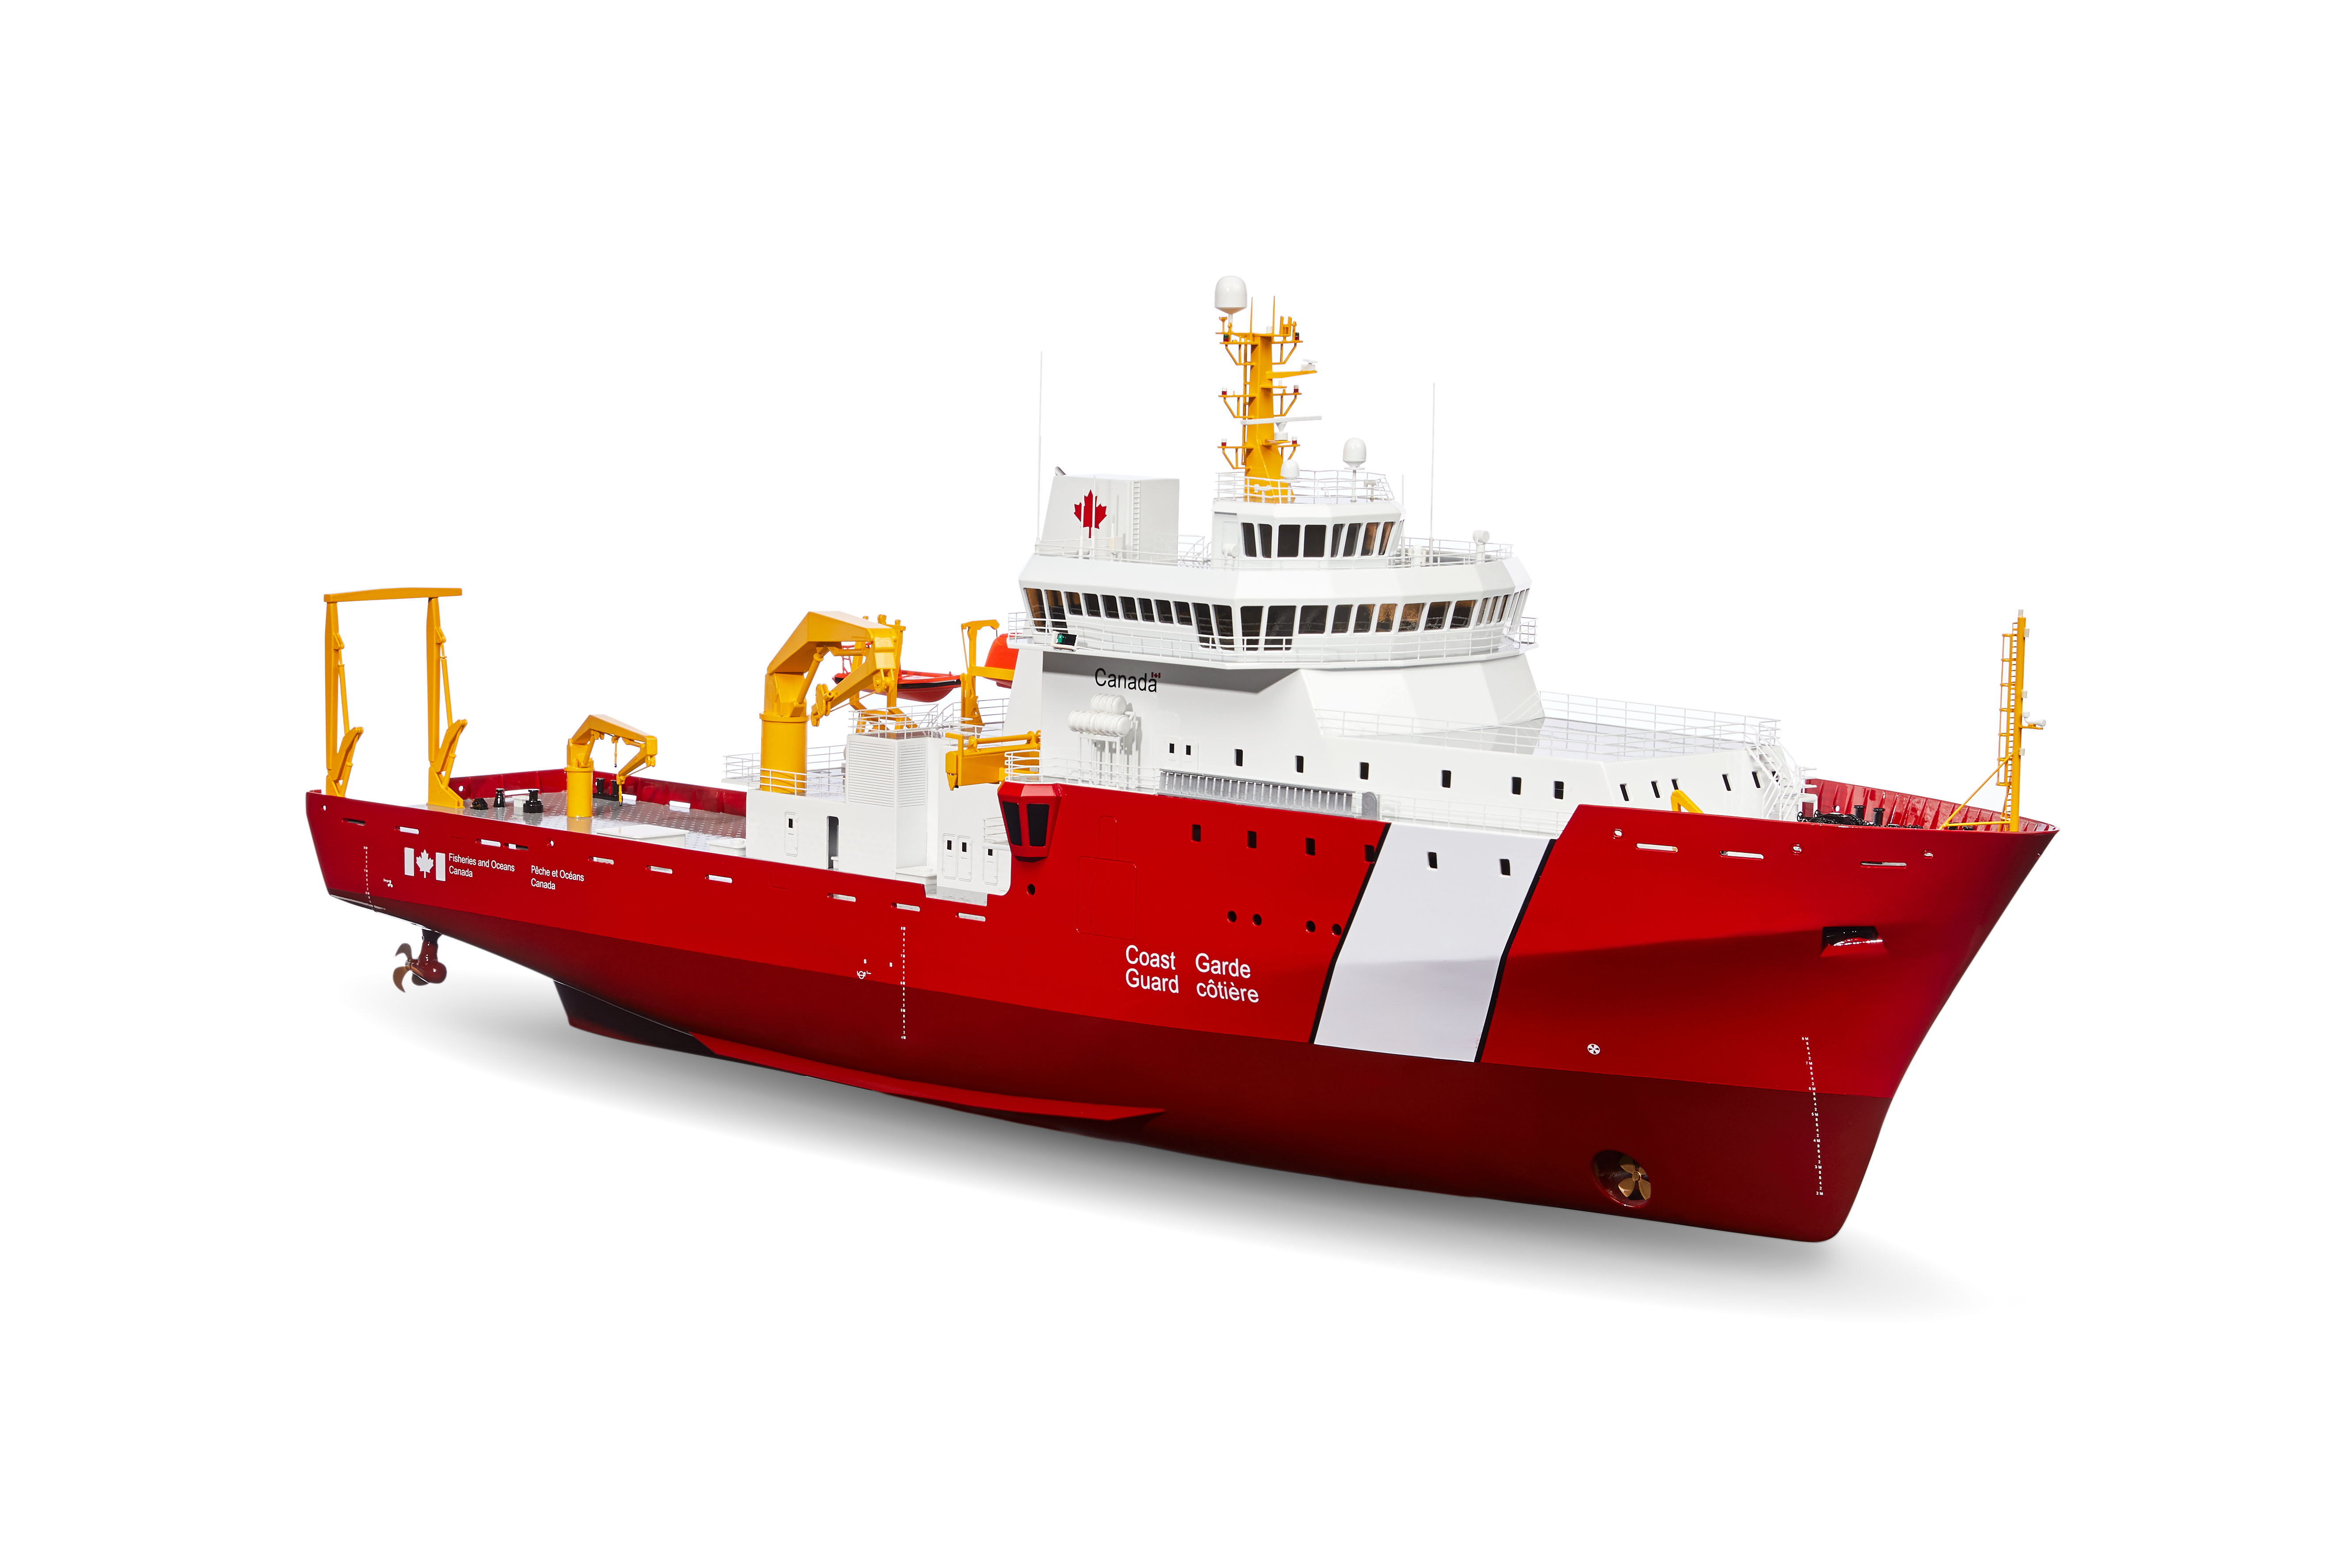 Significant contract award announced for work on the Offshore Oceanographic Science Vessel